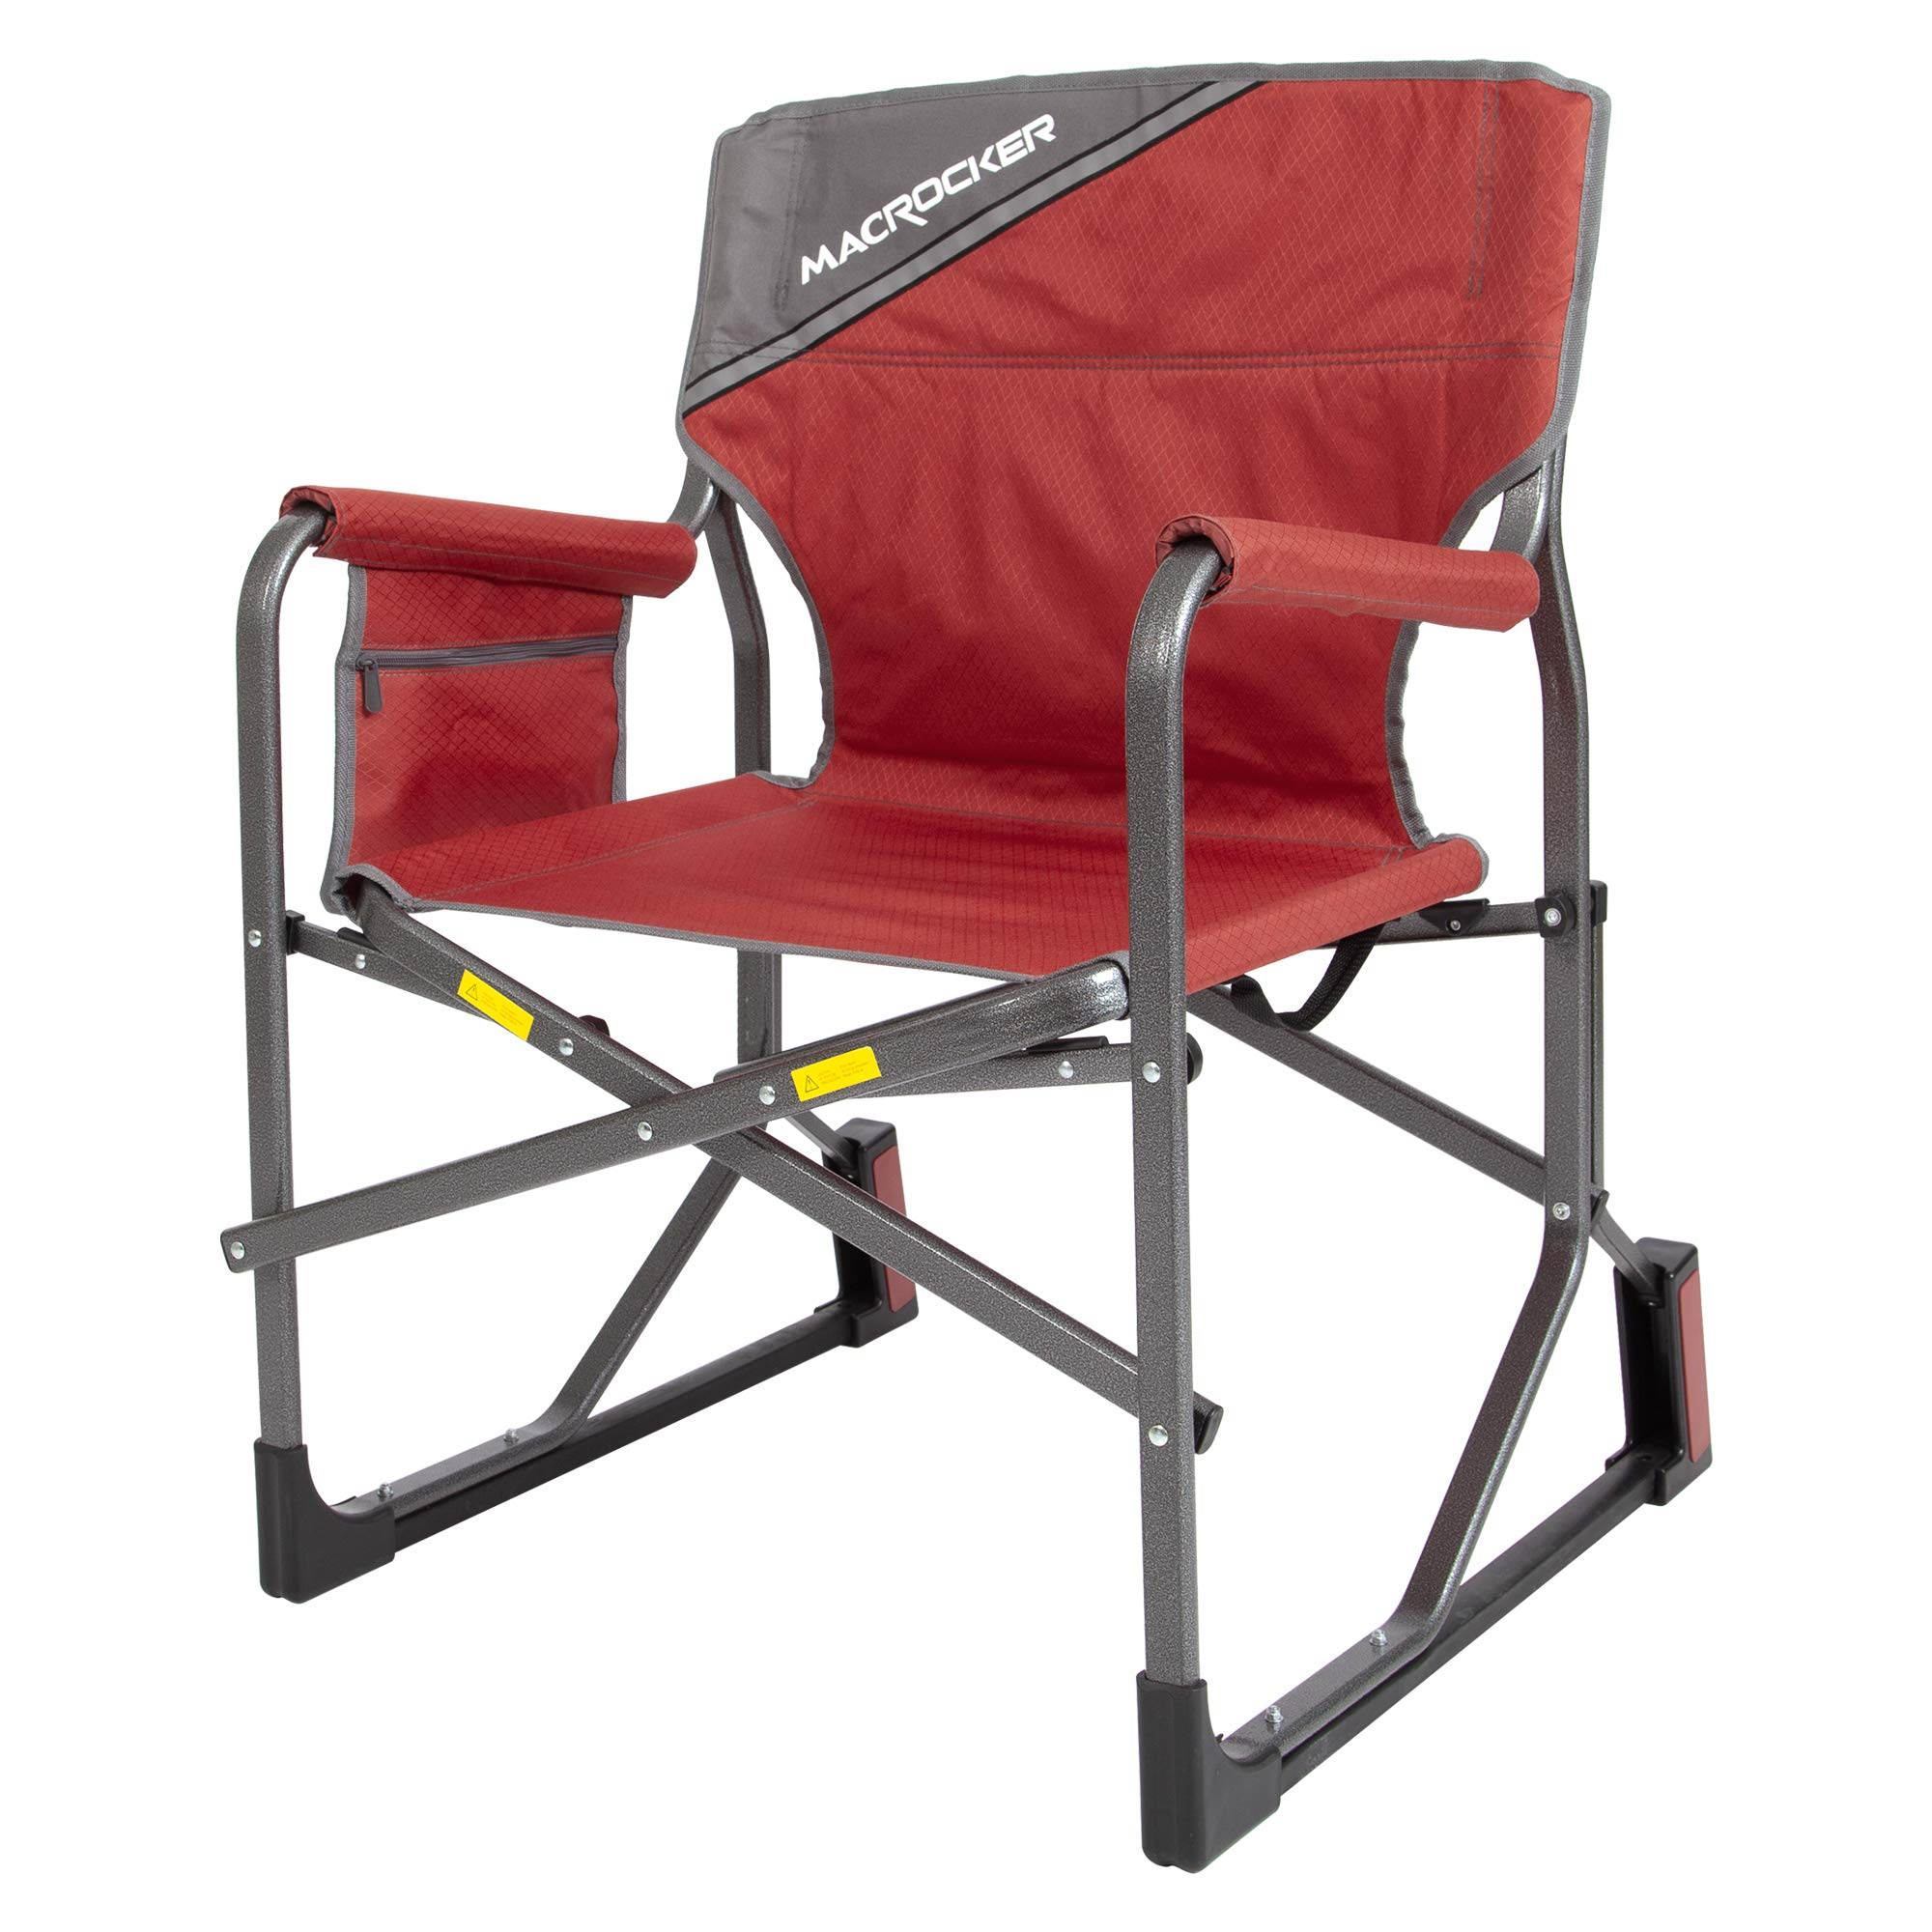 Mac Sports MacRocker Foldable Outdoor Freestyle Rocking Chair | Collapsible Folding Rocker Springless Rust-Free Anti-Tip Guard for Camping Fishing Backyard Porch | Portable Lightweight - 225 lbs | Red